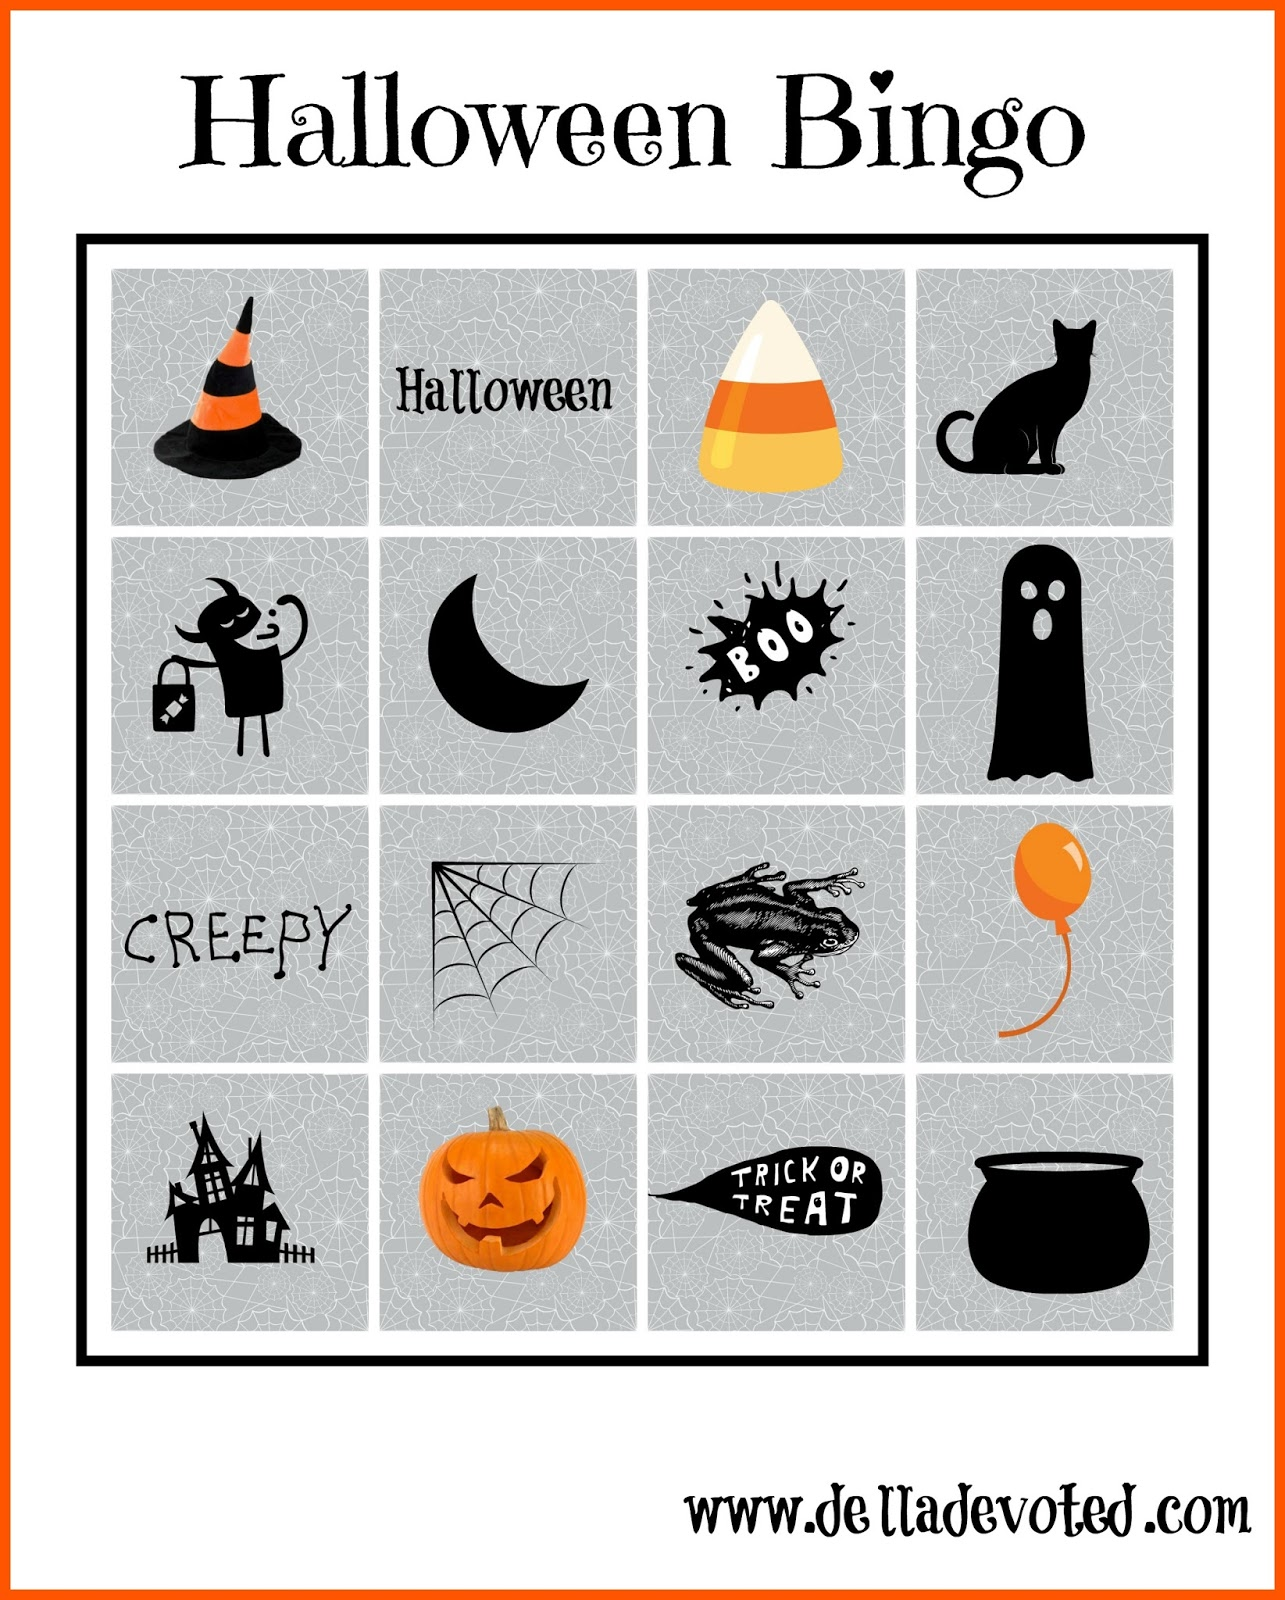 image relating to Printable Halloween Bingo Card called Cost-free Halloween Bingo Printables - Della Focused